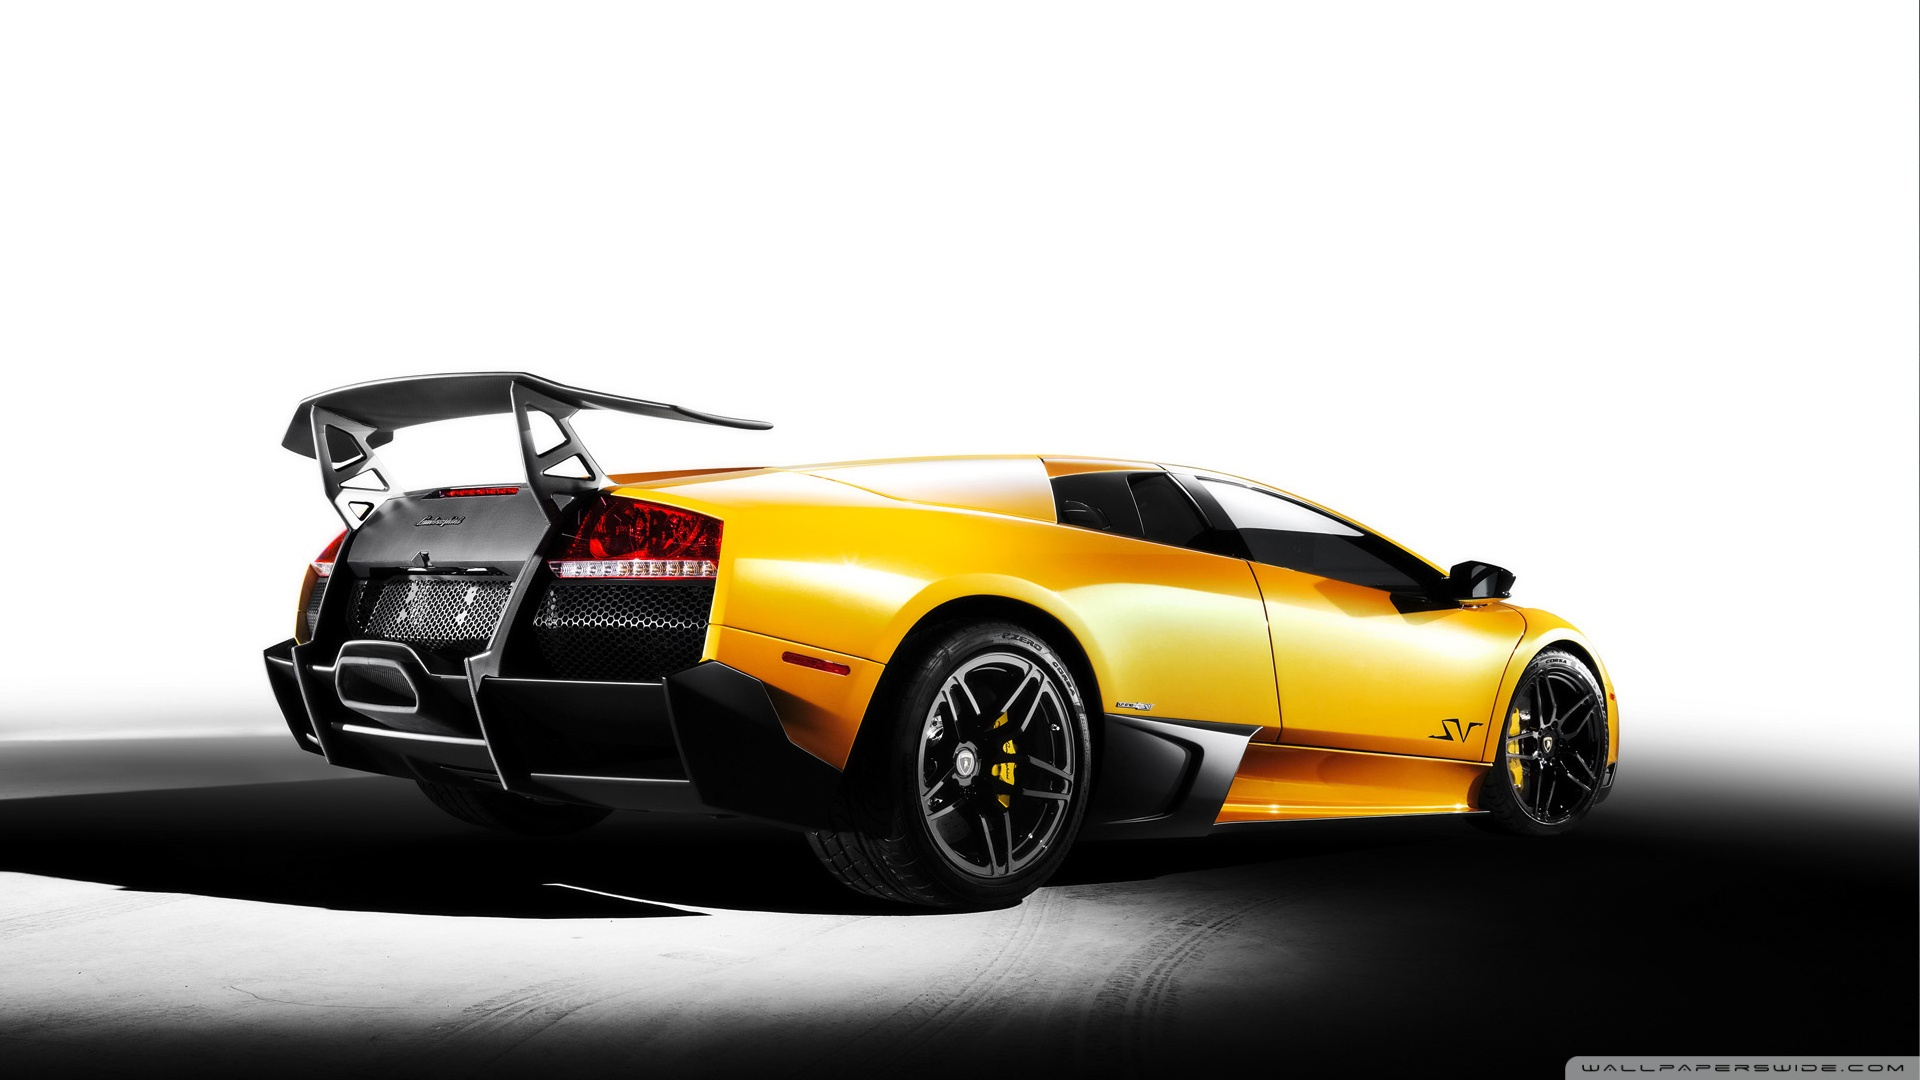 Lamborghini Sport Cars HD desktop wallpaper : Widescreen : High